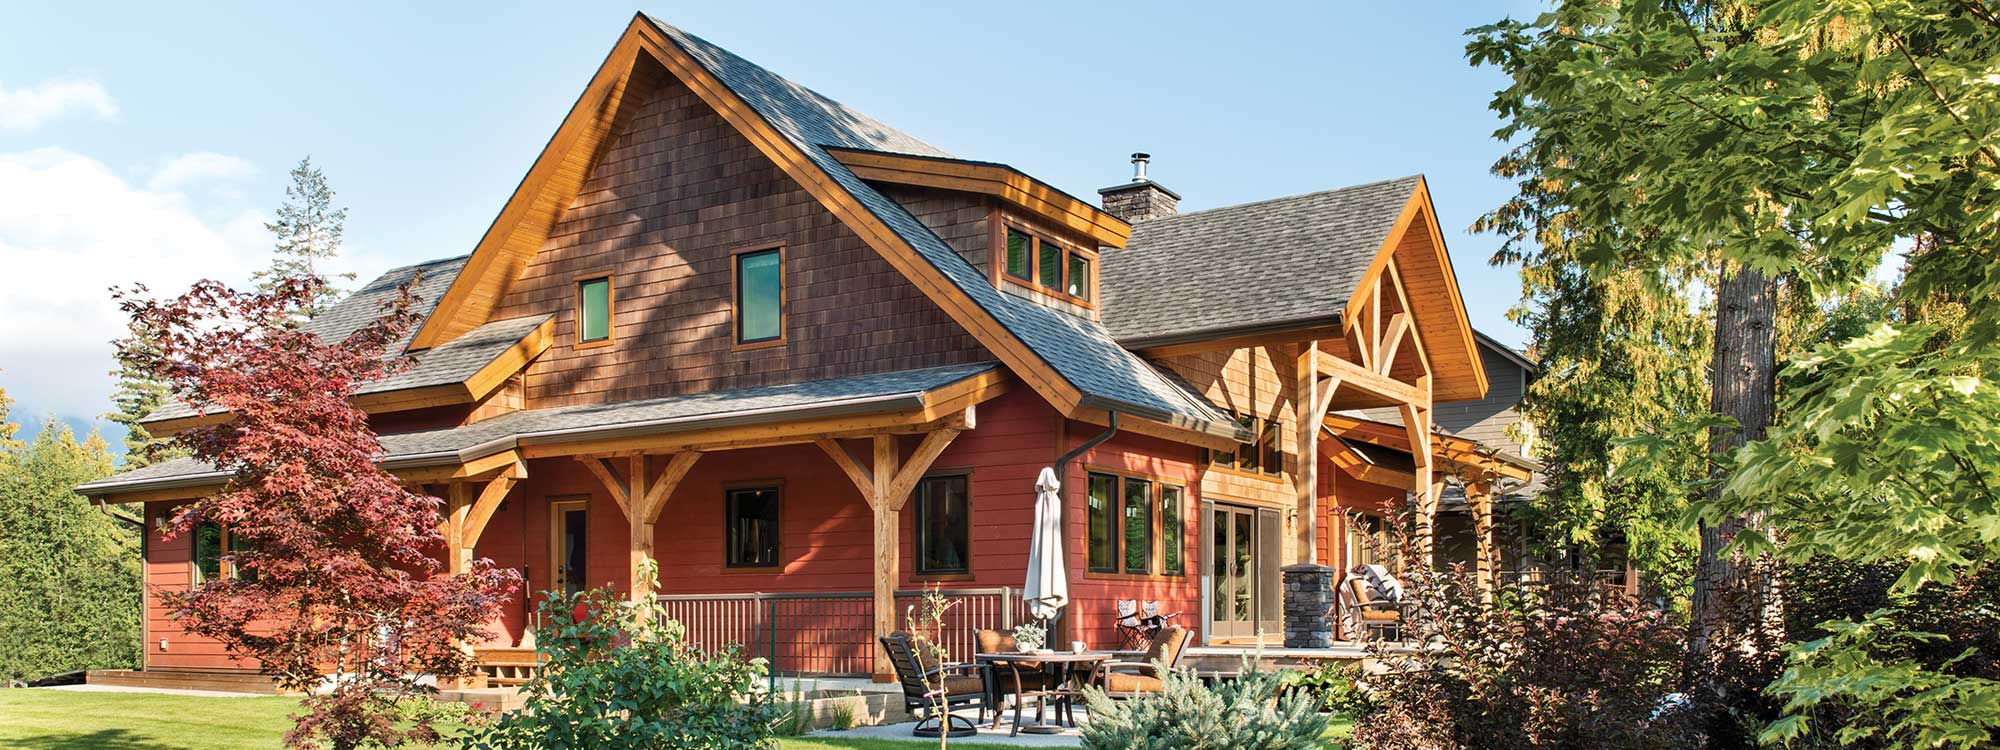 Home - Custom timber home Canada